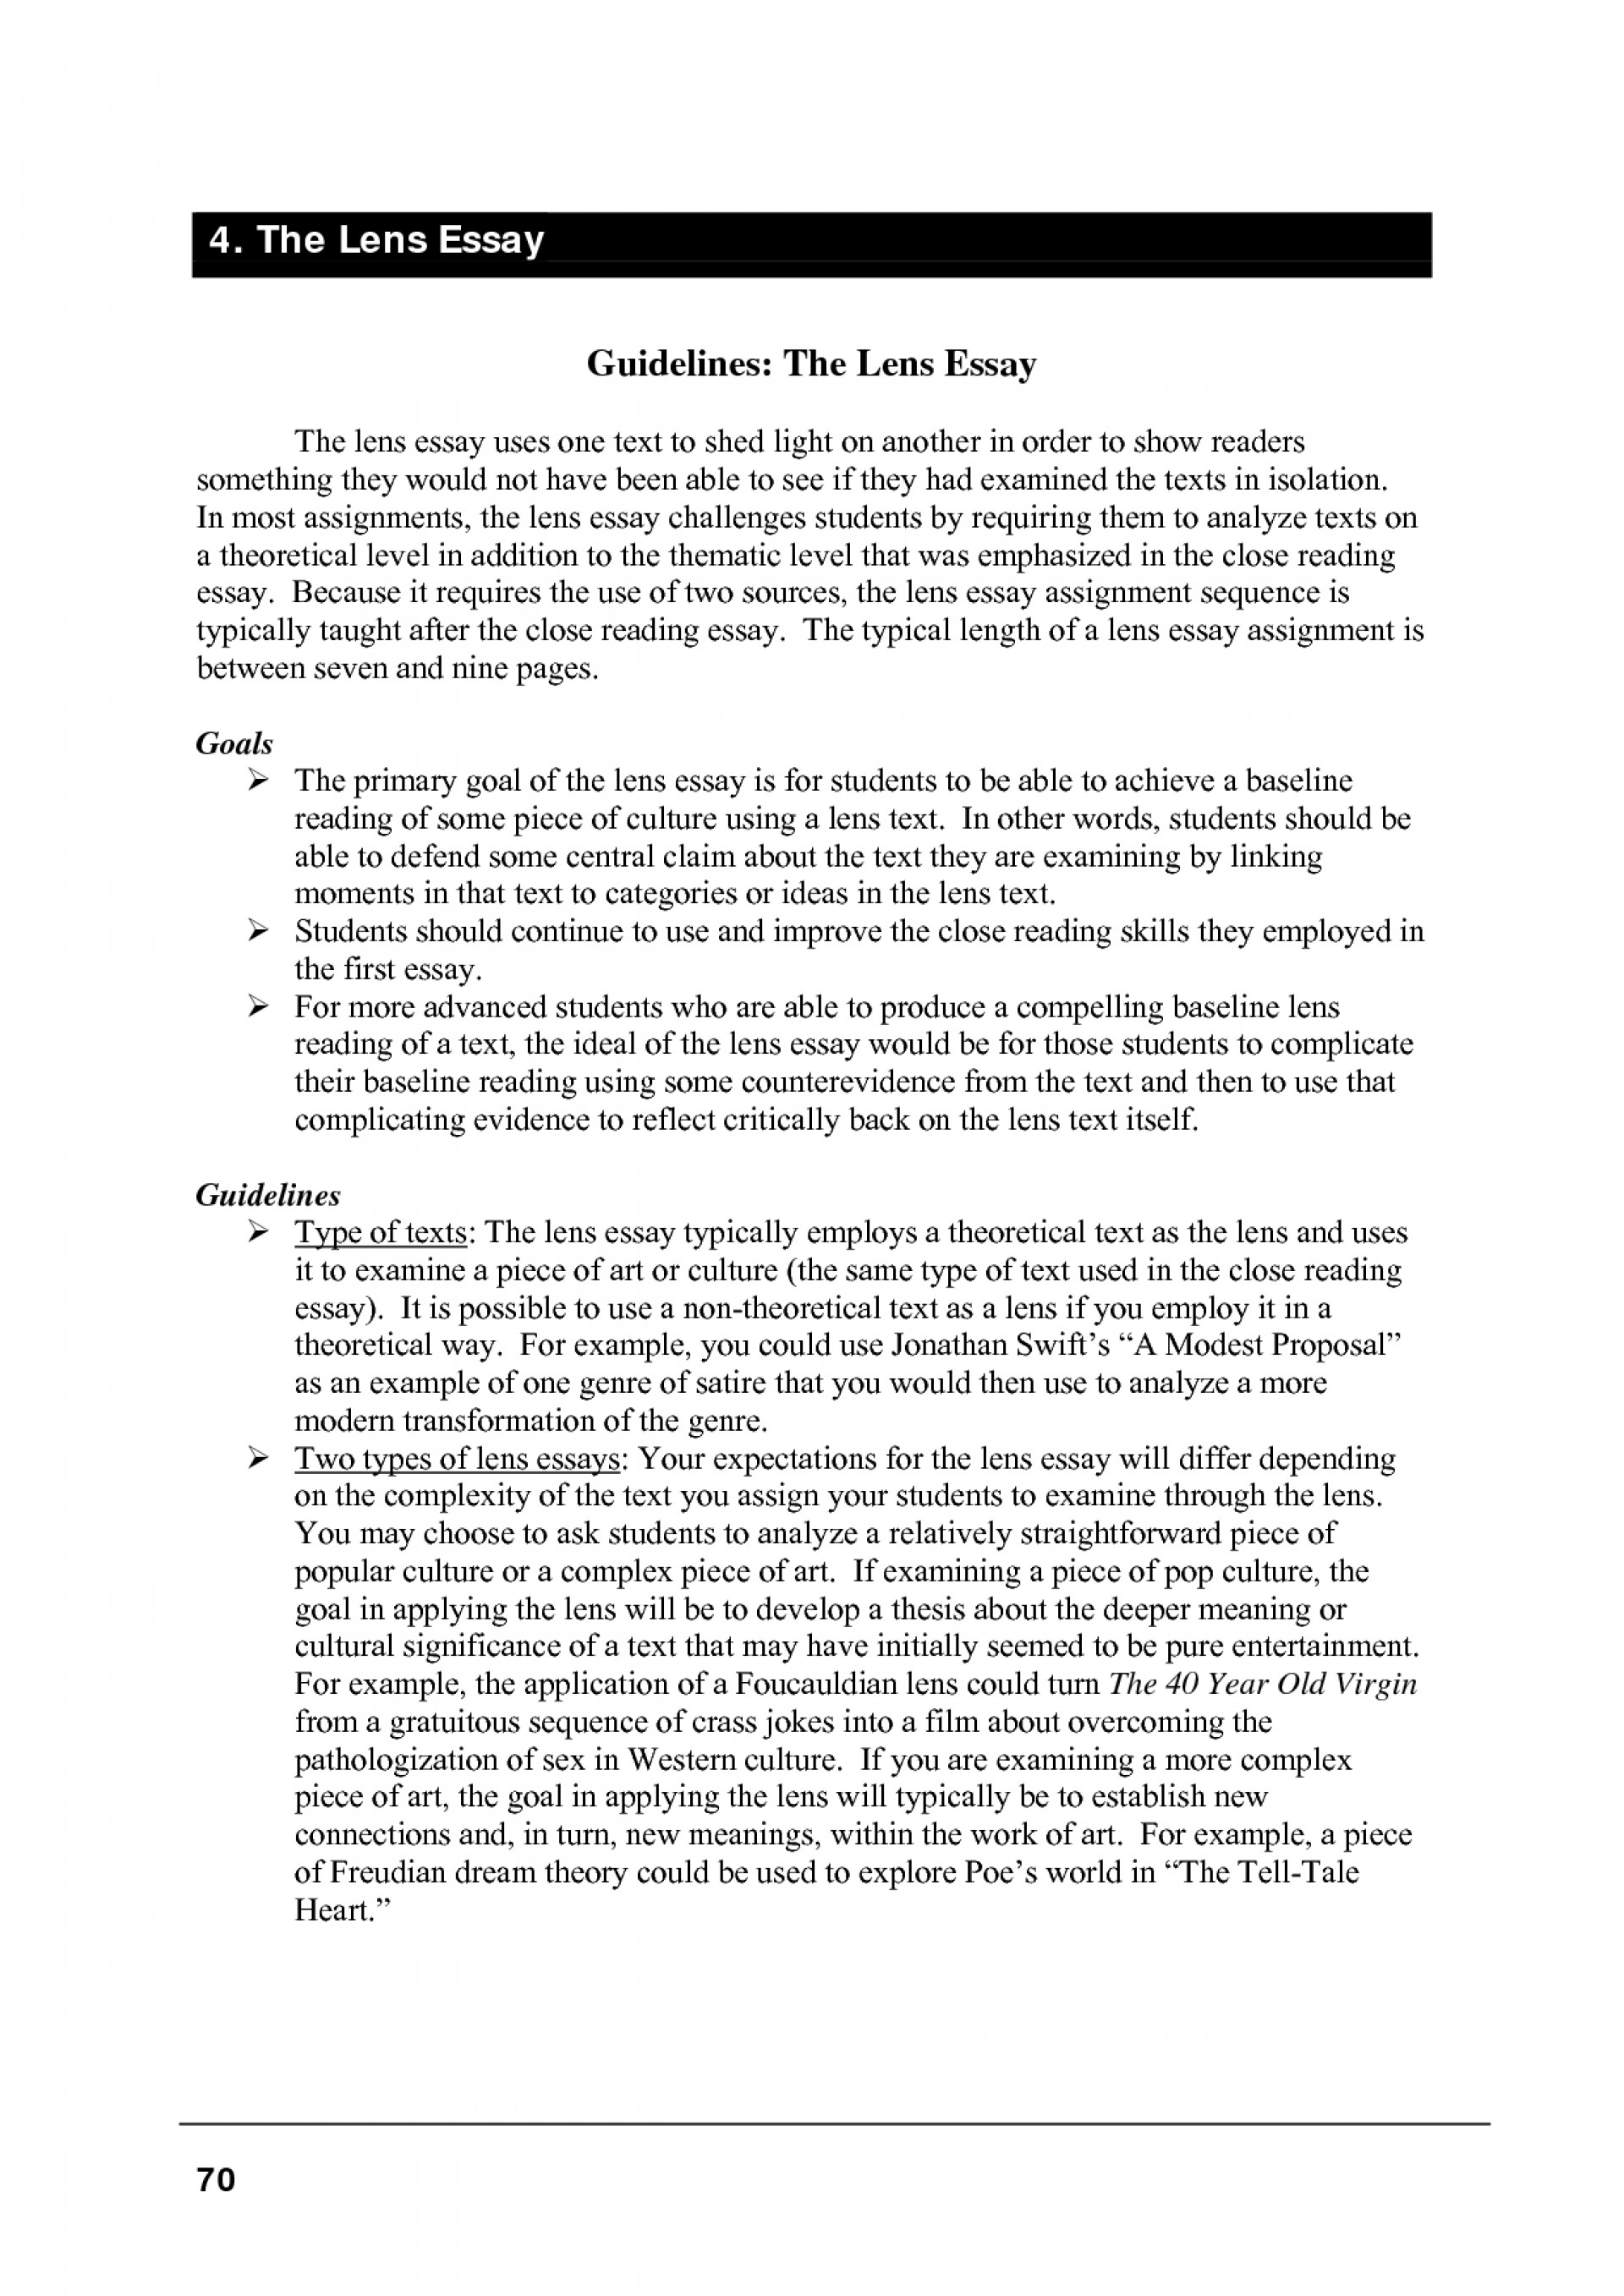 007 critical lens essay outline format 130083 example how to write